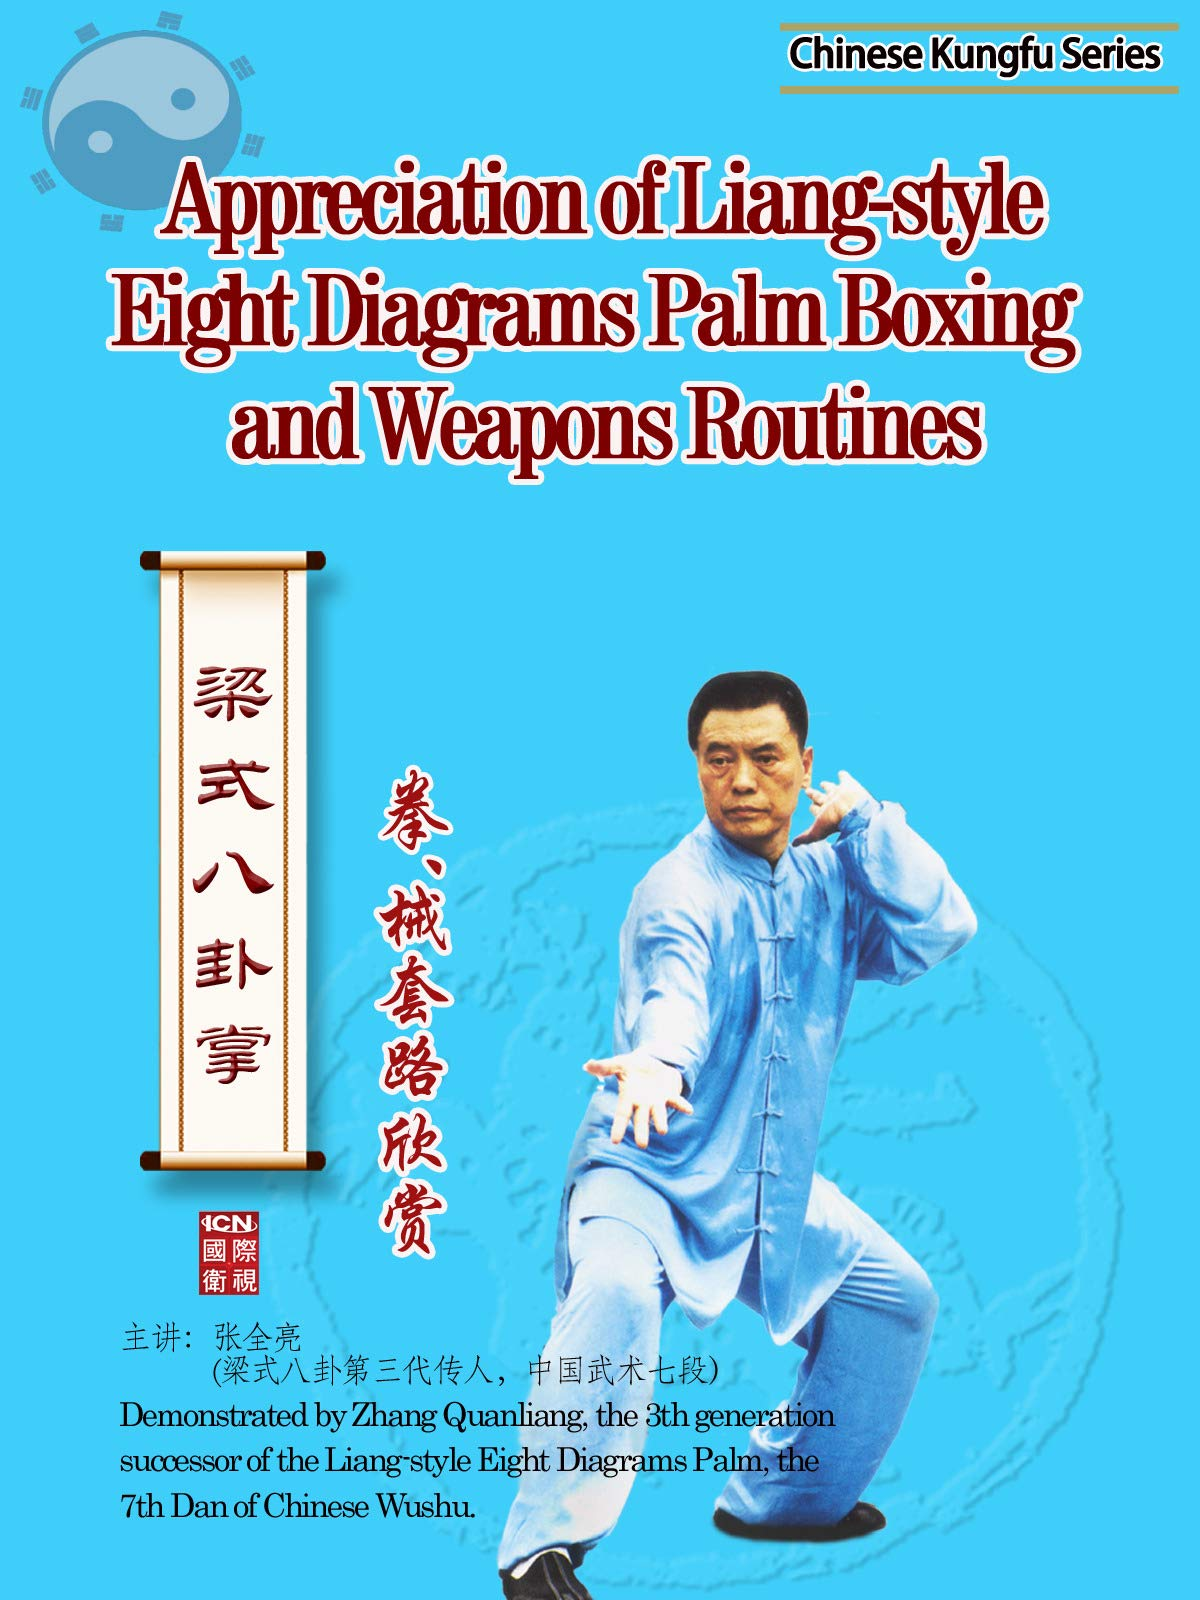 Appreciation of Liang-style Eight Diagrams Palm Boxing and Weapons Routines(Demonstrated by Zhang Quanliang)